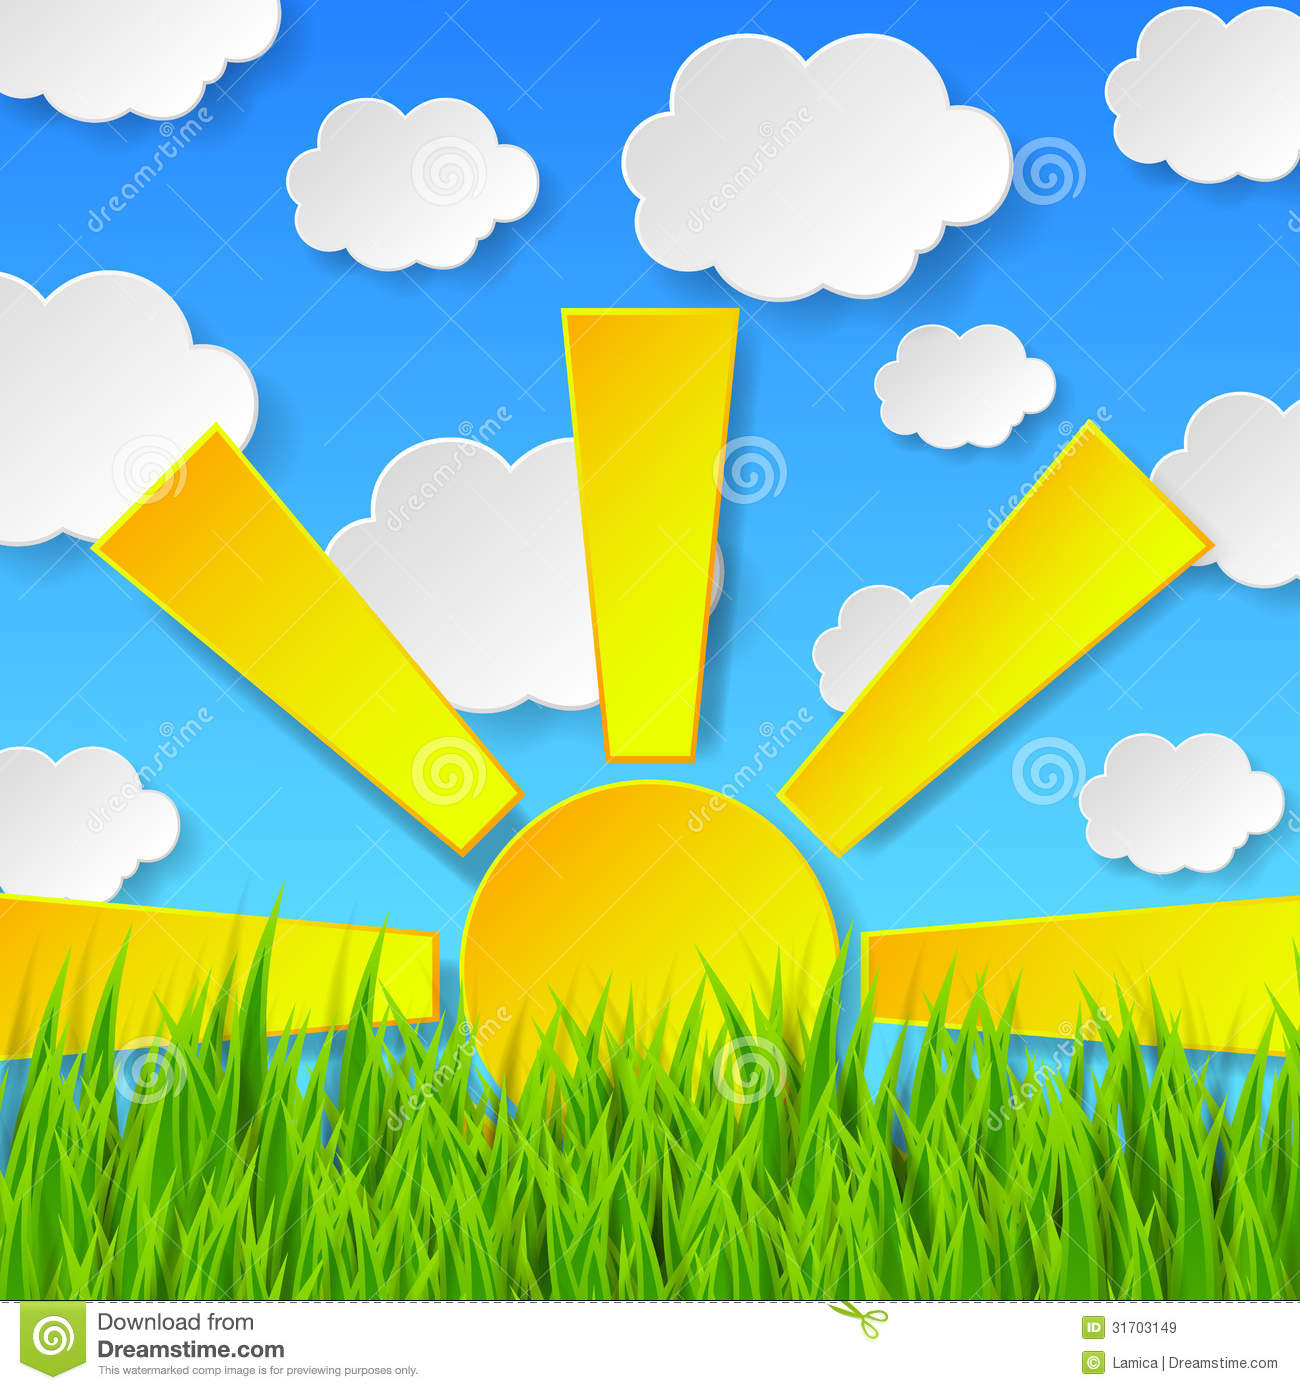 Sun and grass clipart.